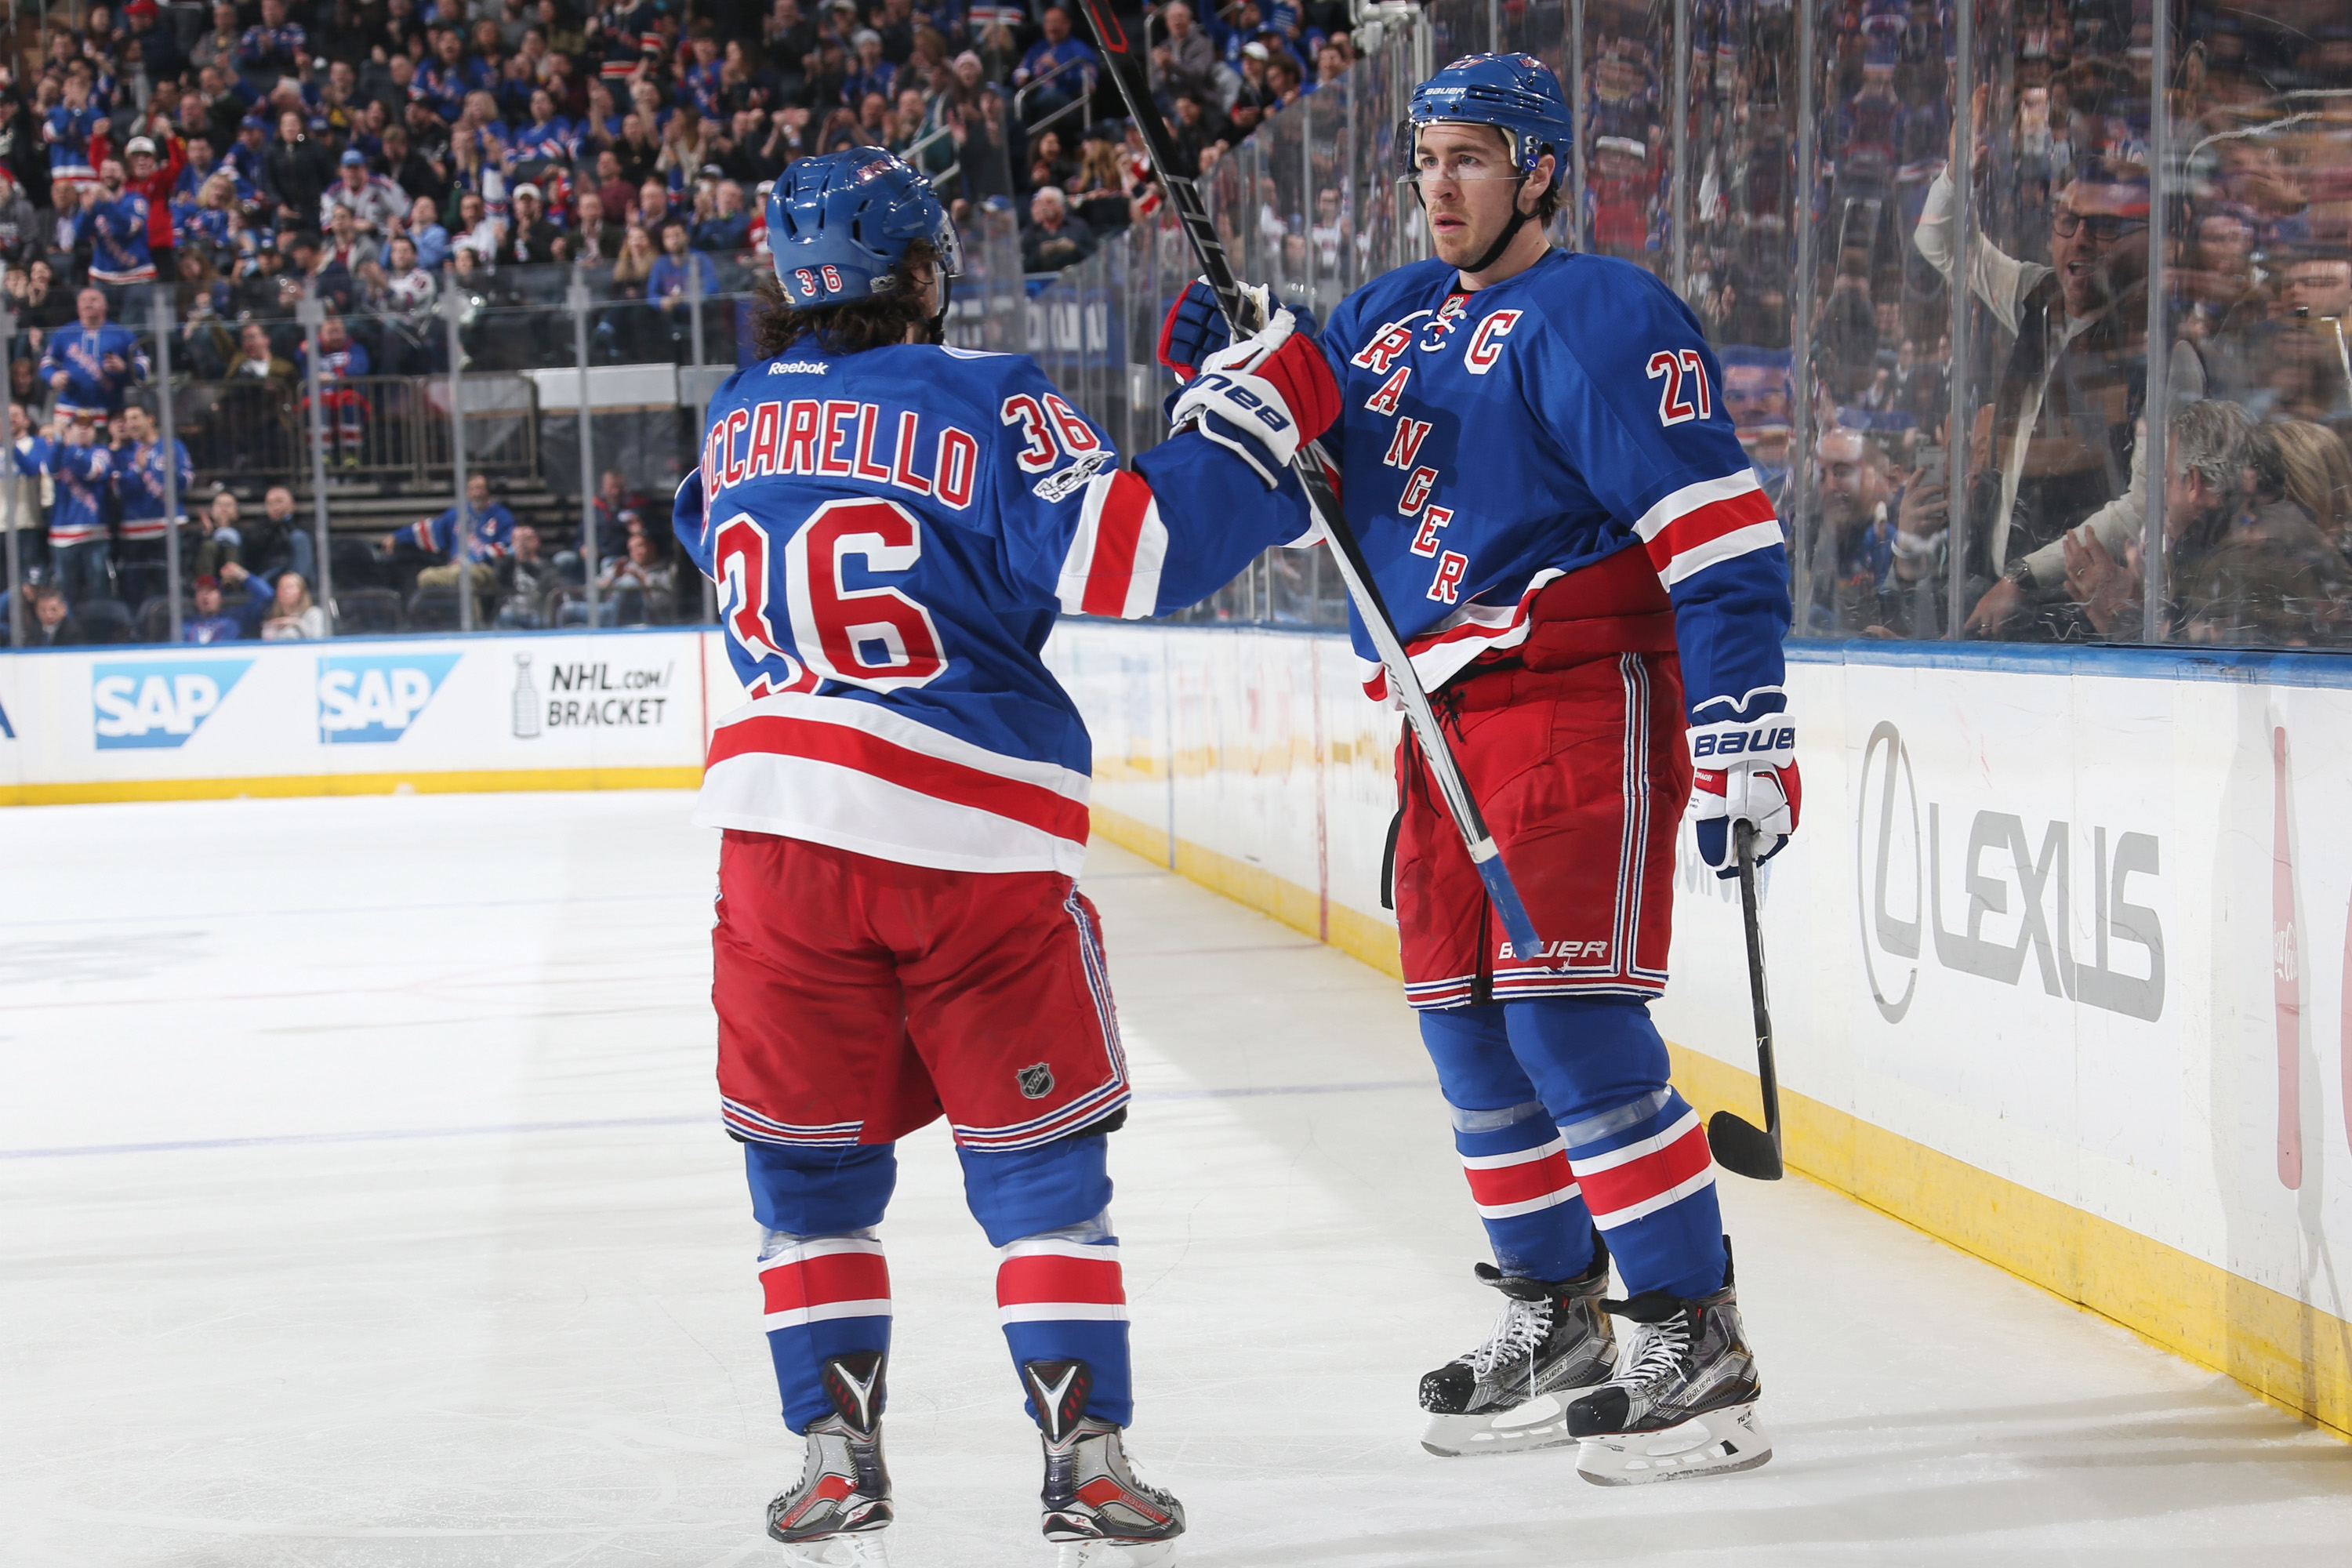 New York Rangers Preview: Fiery Battle in Store vs Flames